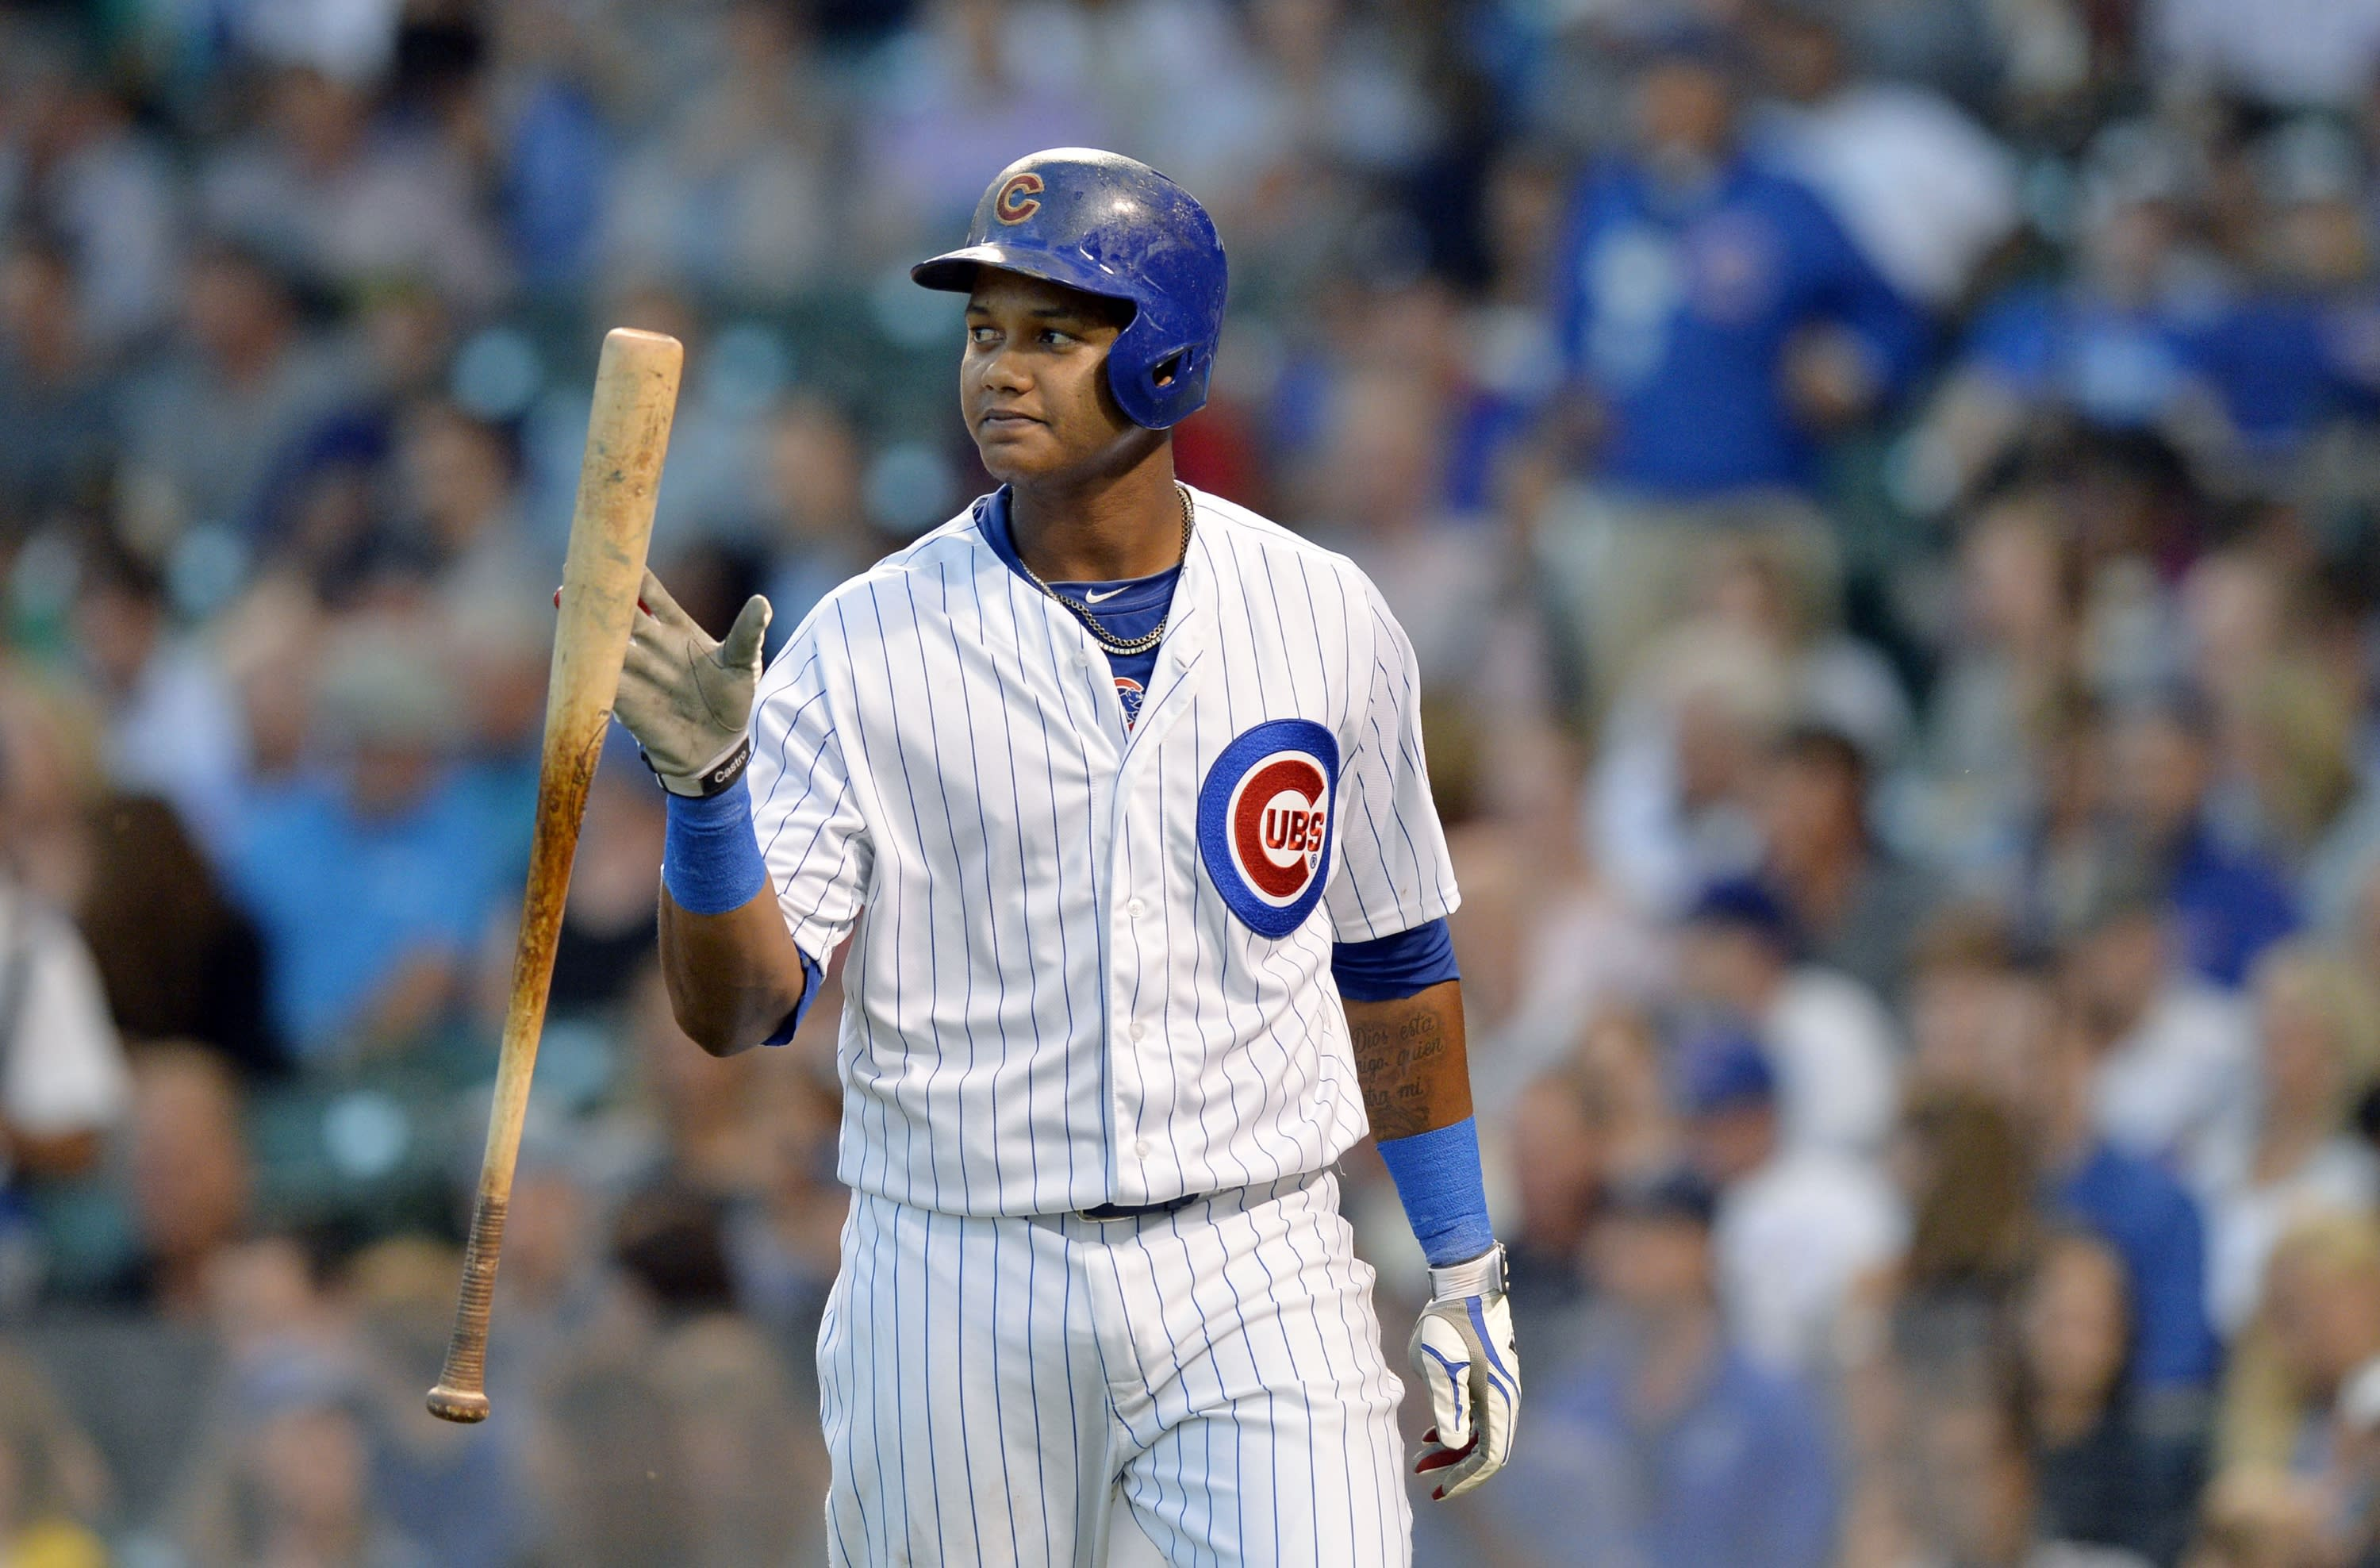 Starlin Castro questioned following shooting in Dominican Republic